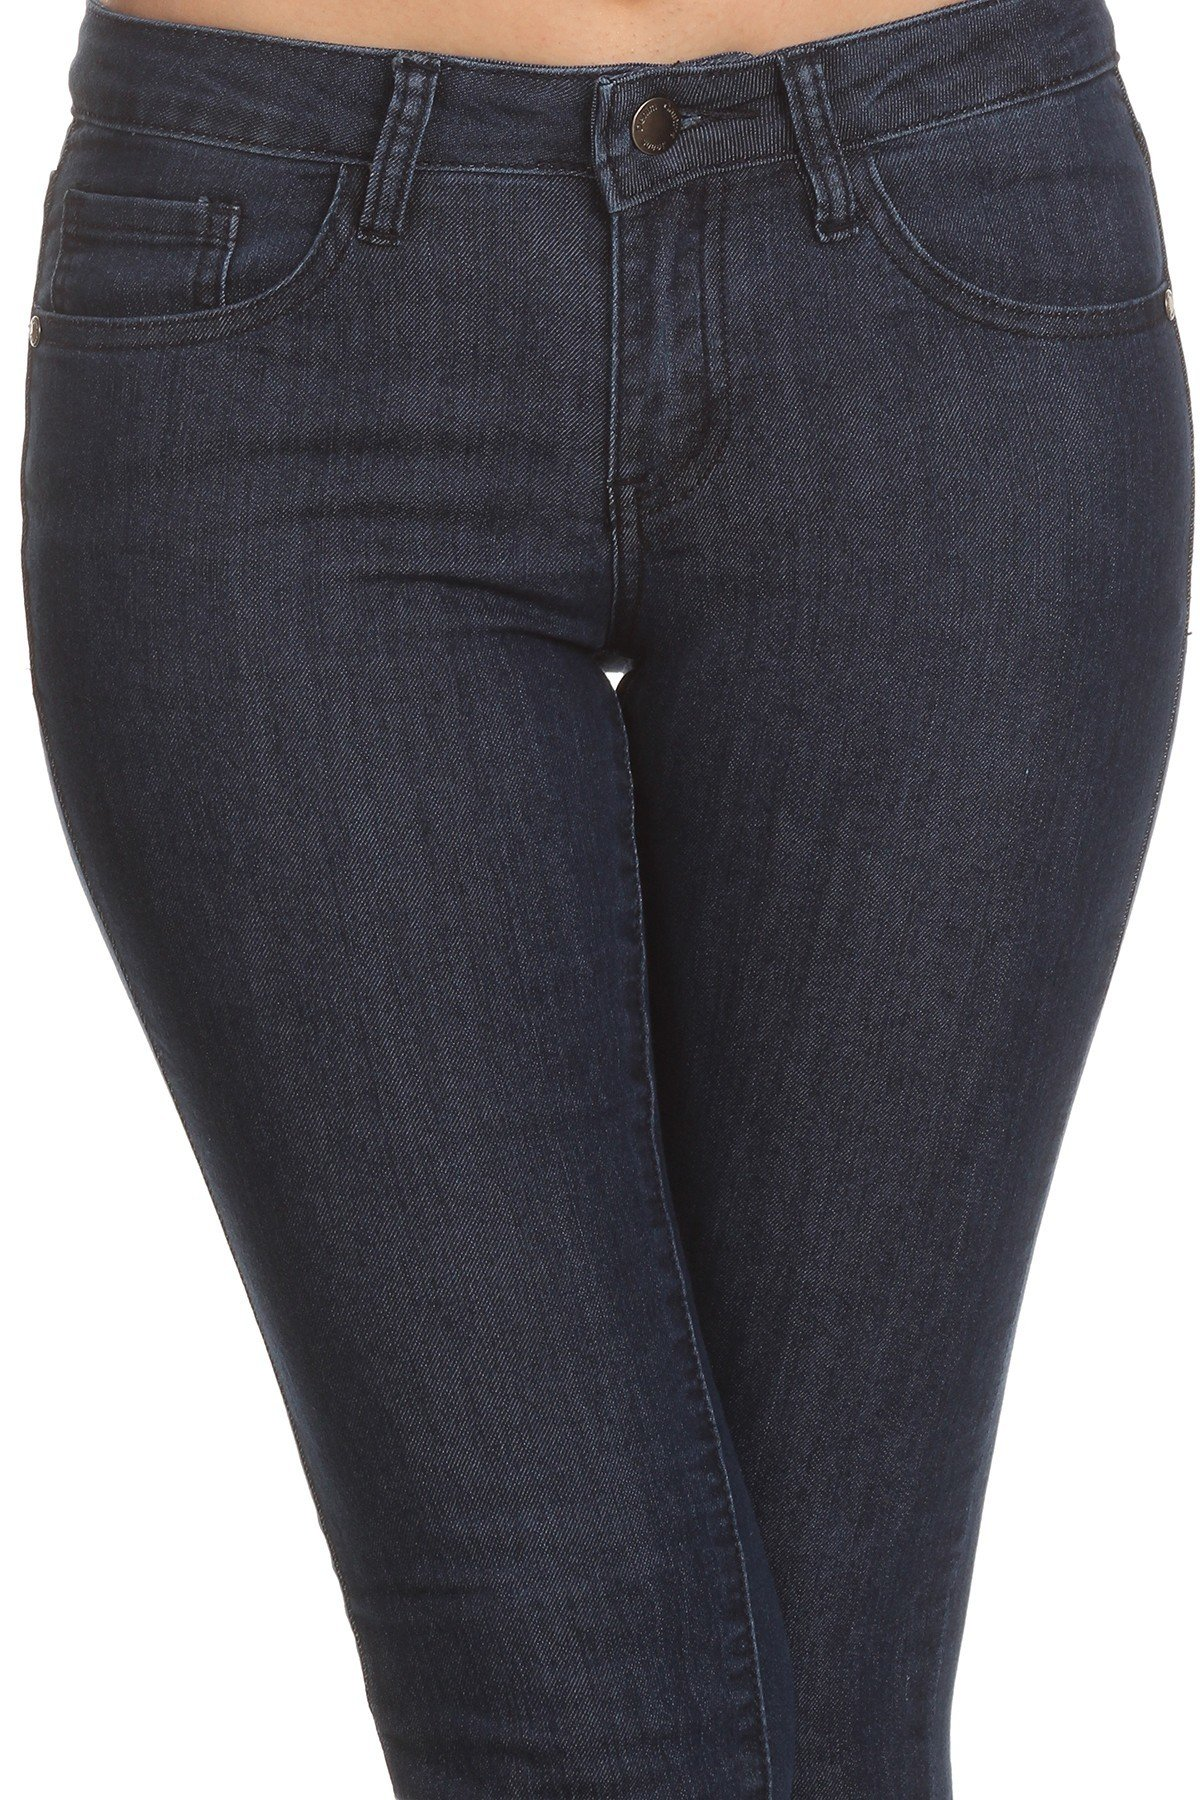 Denim Couture Skinny Jean